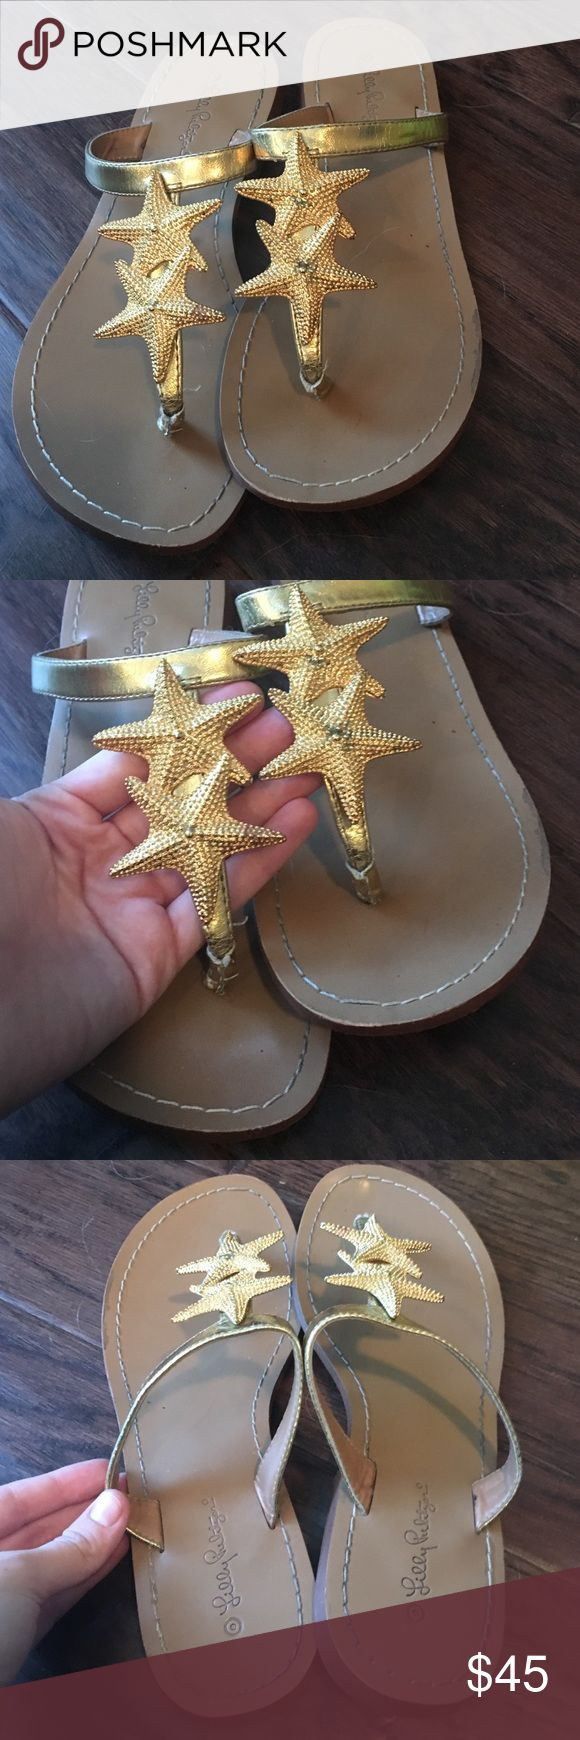 Lilly Gold Starfish Sandal Flip Flops size 7 Adorable gold starfish sandals only worn twice, lots of life left! Some wear on the bottom and slight discoloration on the left shoe's gold star. Lilly Pulitzer Shoes Sandals